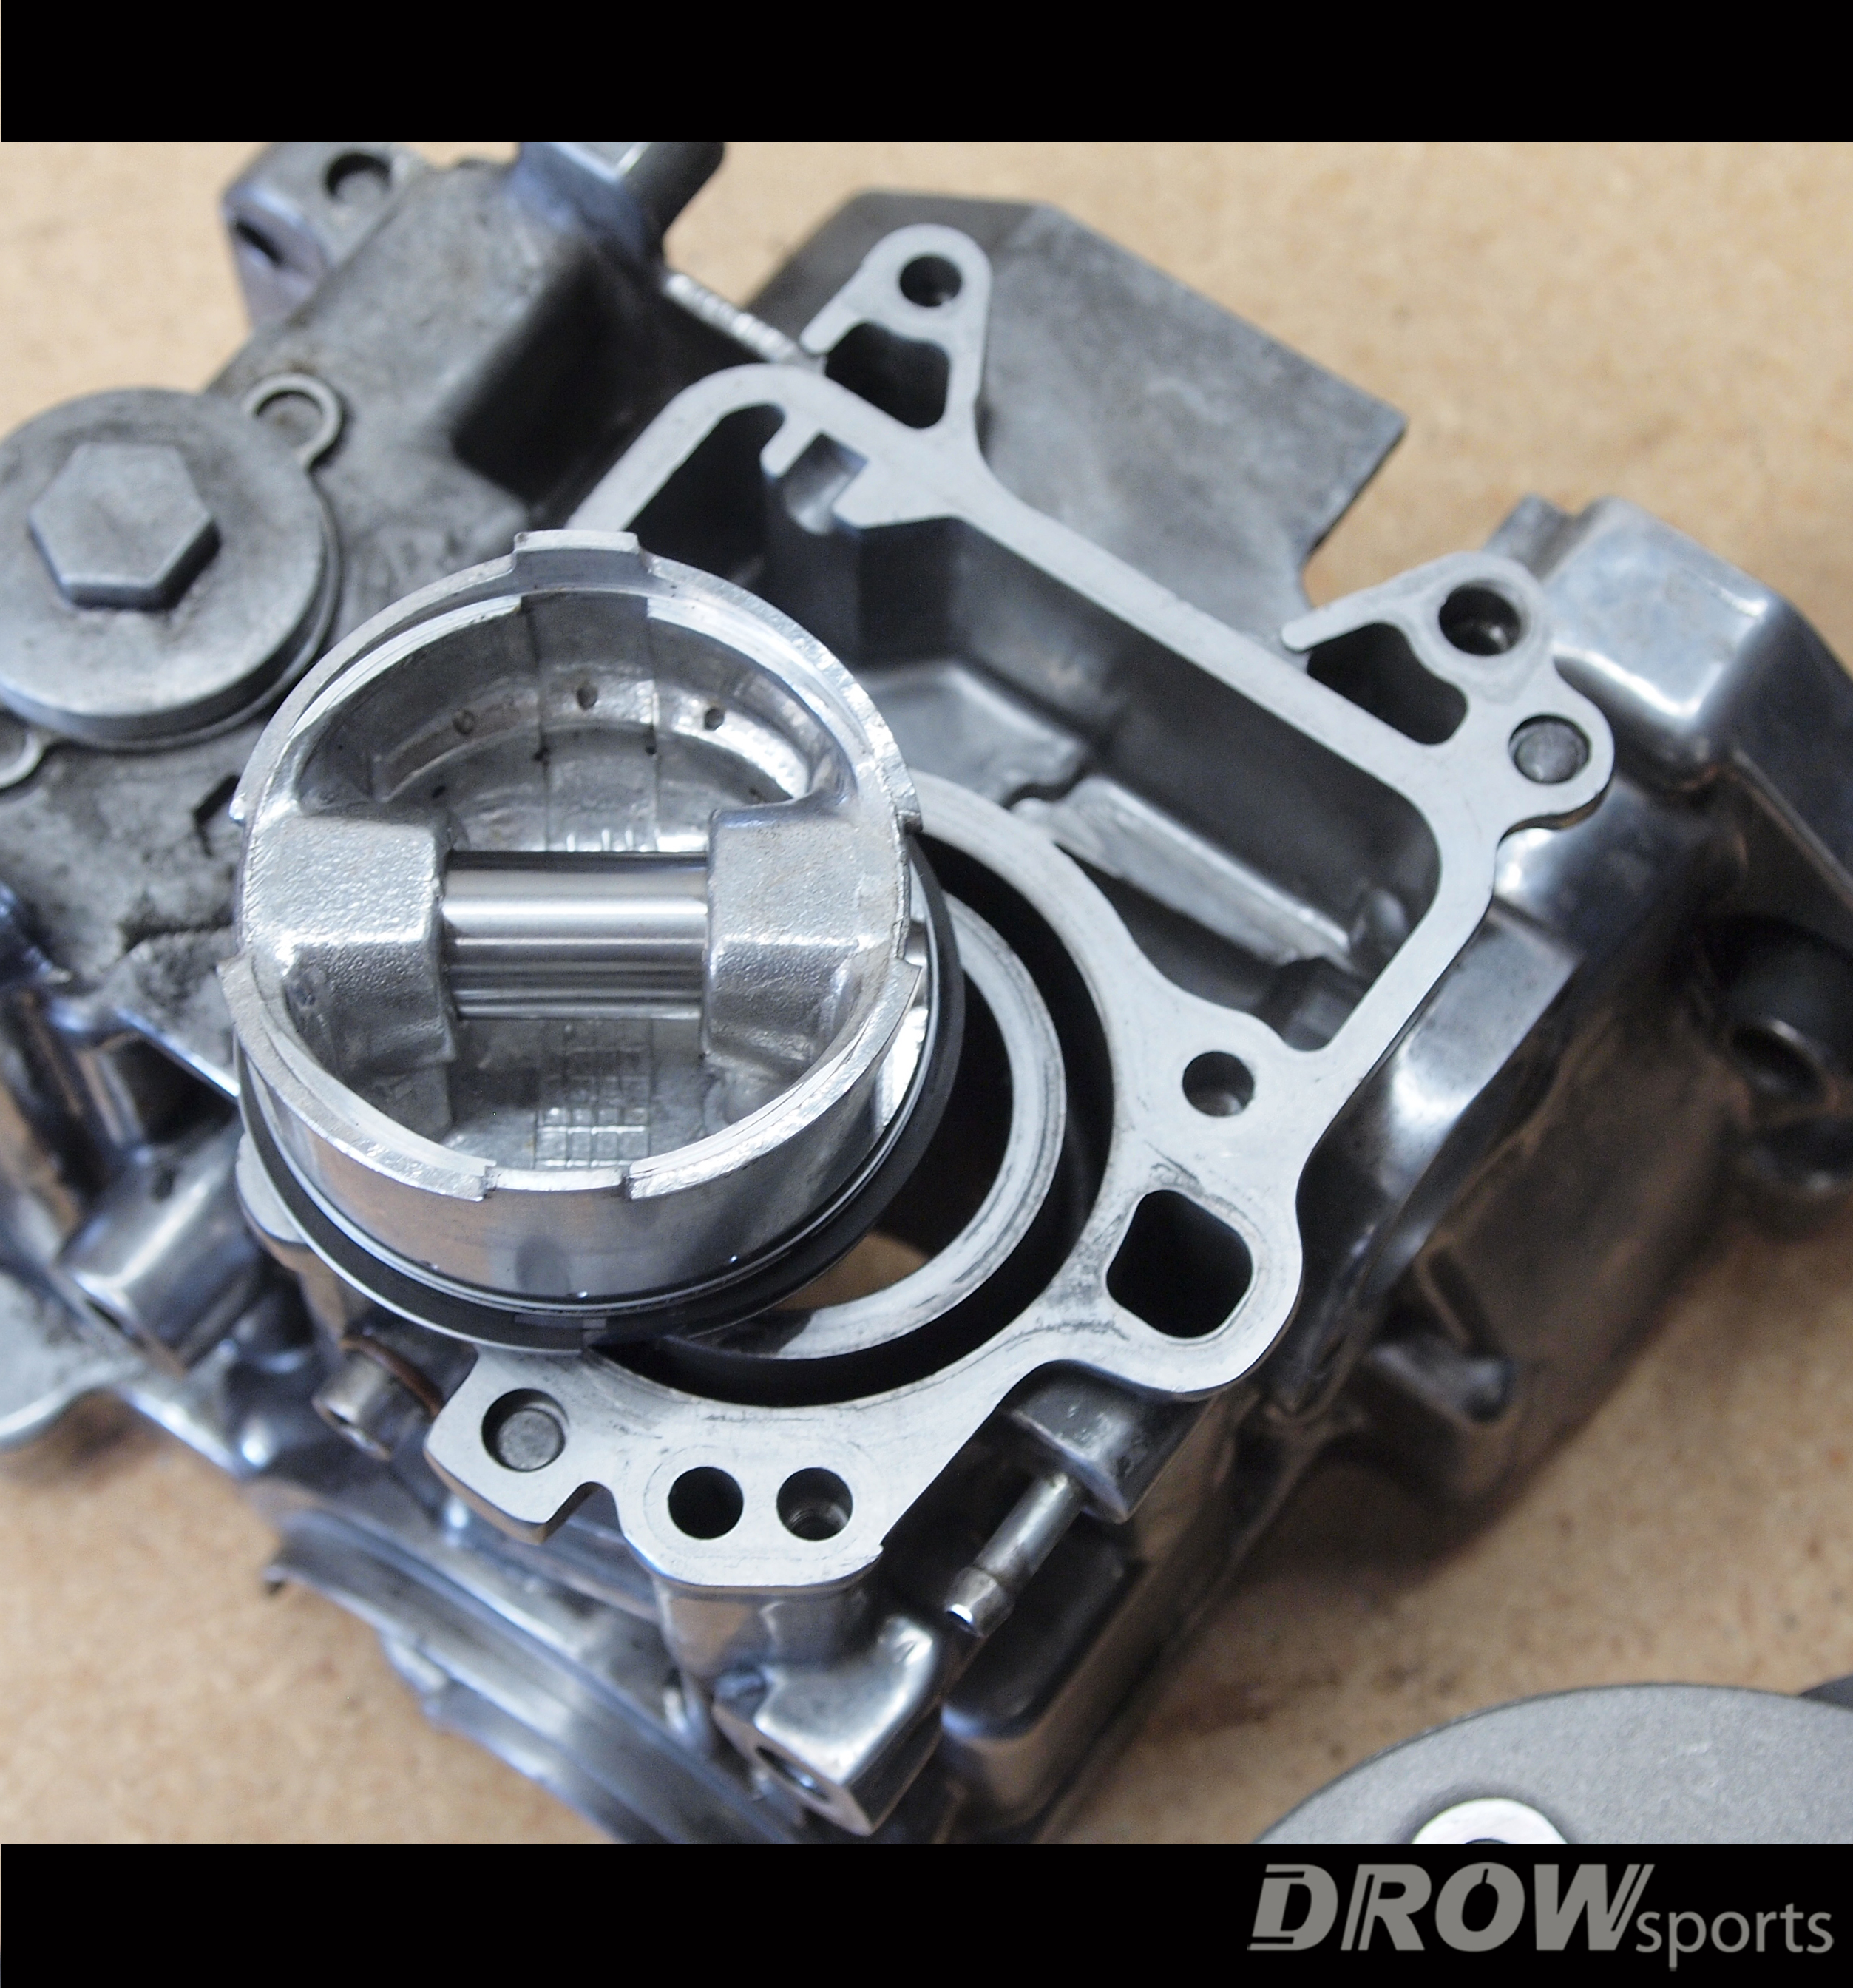 GY6 vs Ruckus Engines | DROWsports Blog